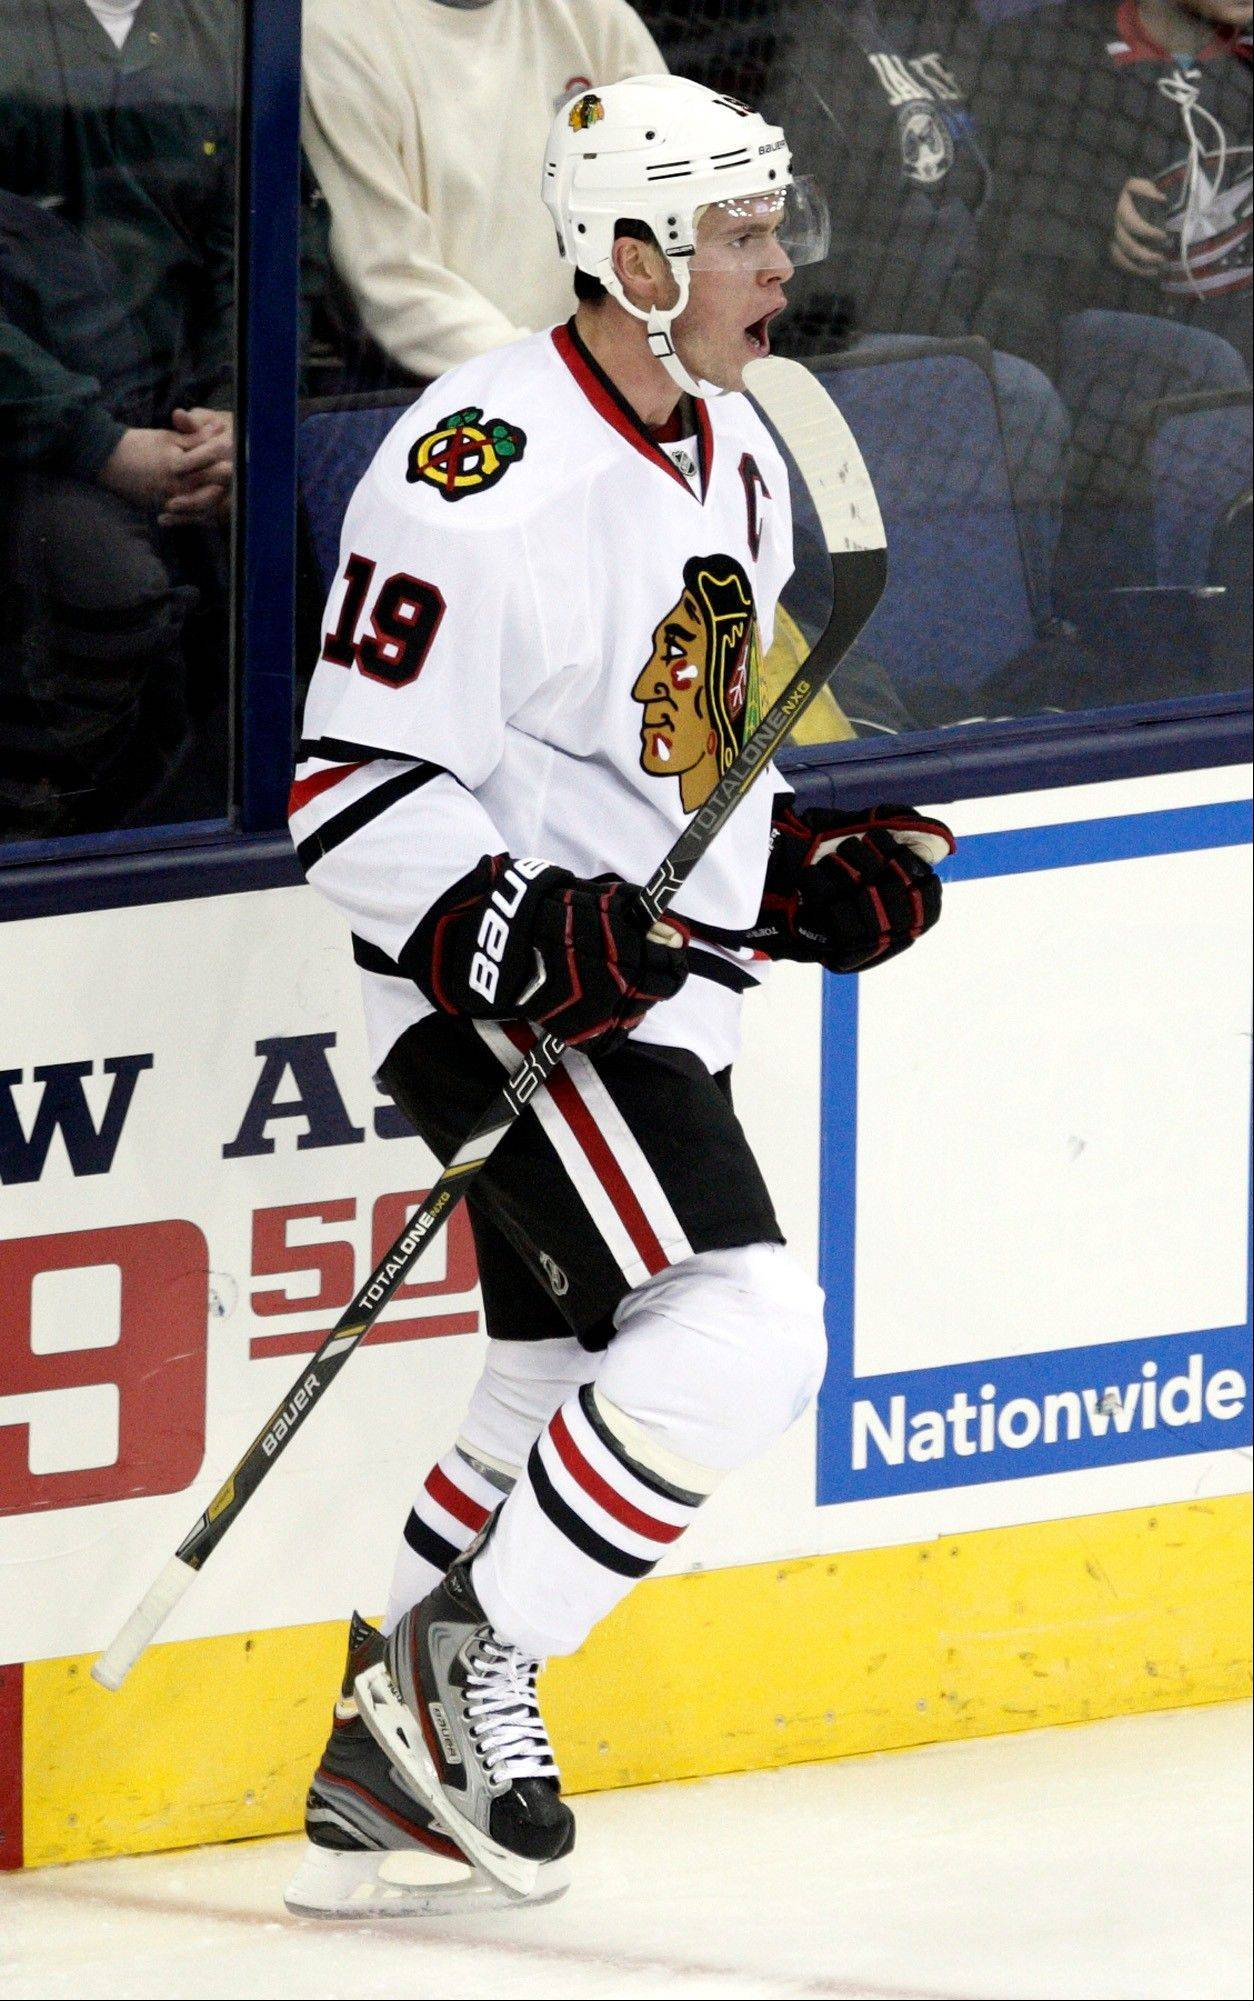 Jonathan Toews celebrates his goal against Columbus Blue Jackets in the third period of an NHL hockey game in Columbus, Ohio, Saturday, Jan. 26, 2013. Chicago won 3-2.